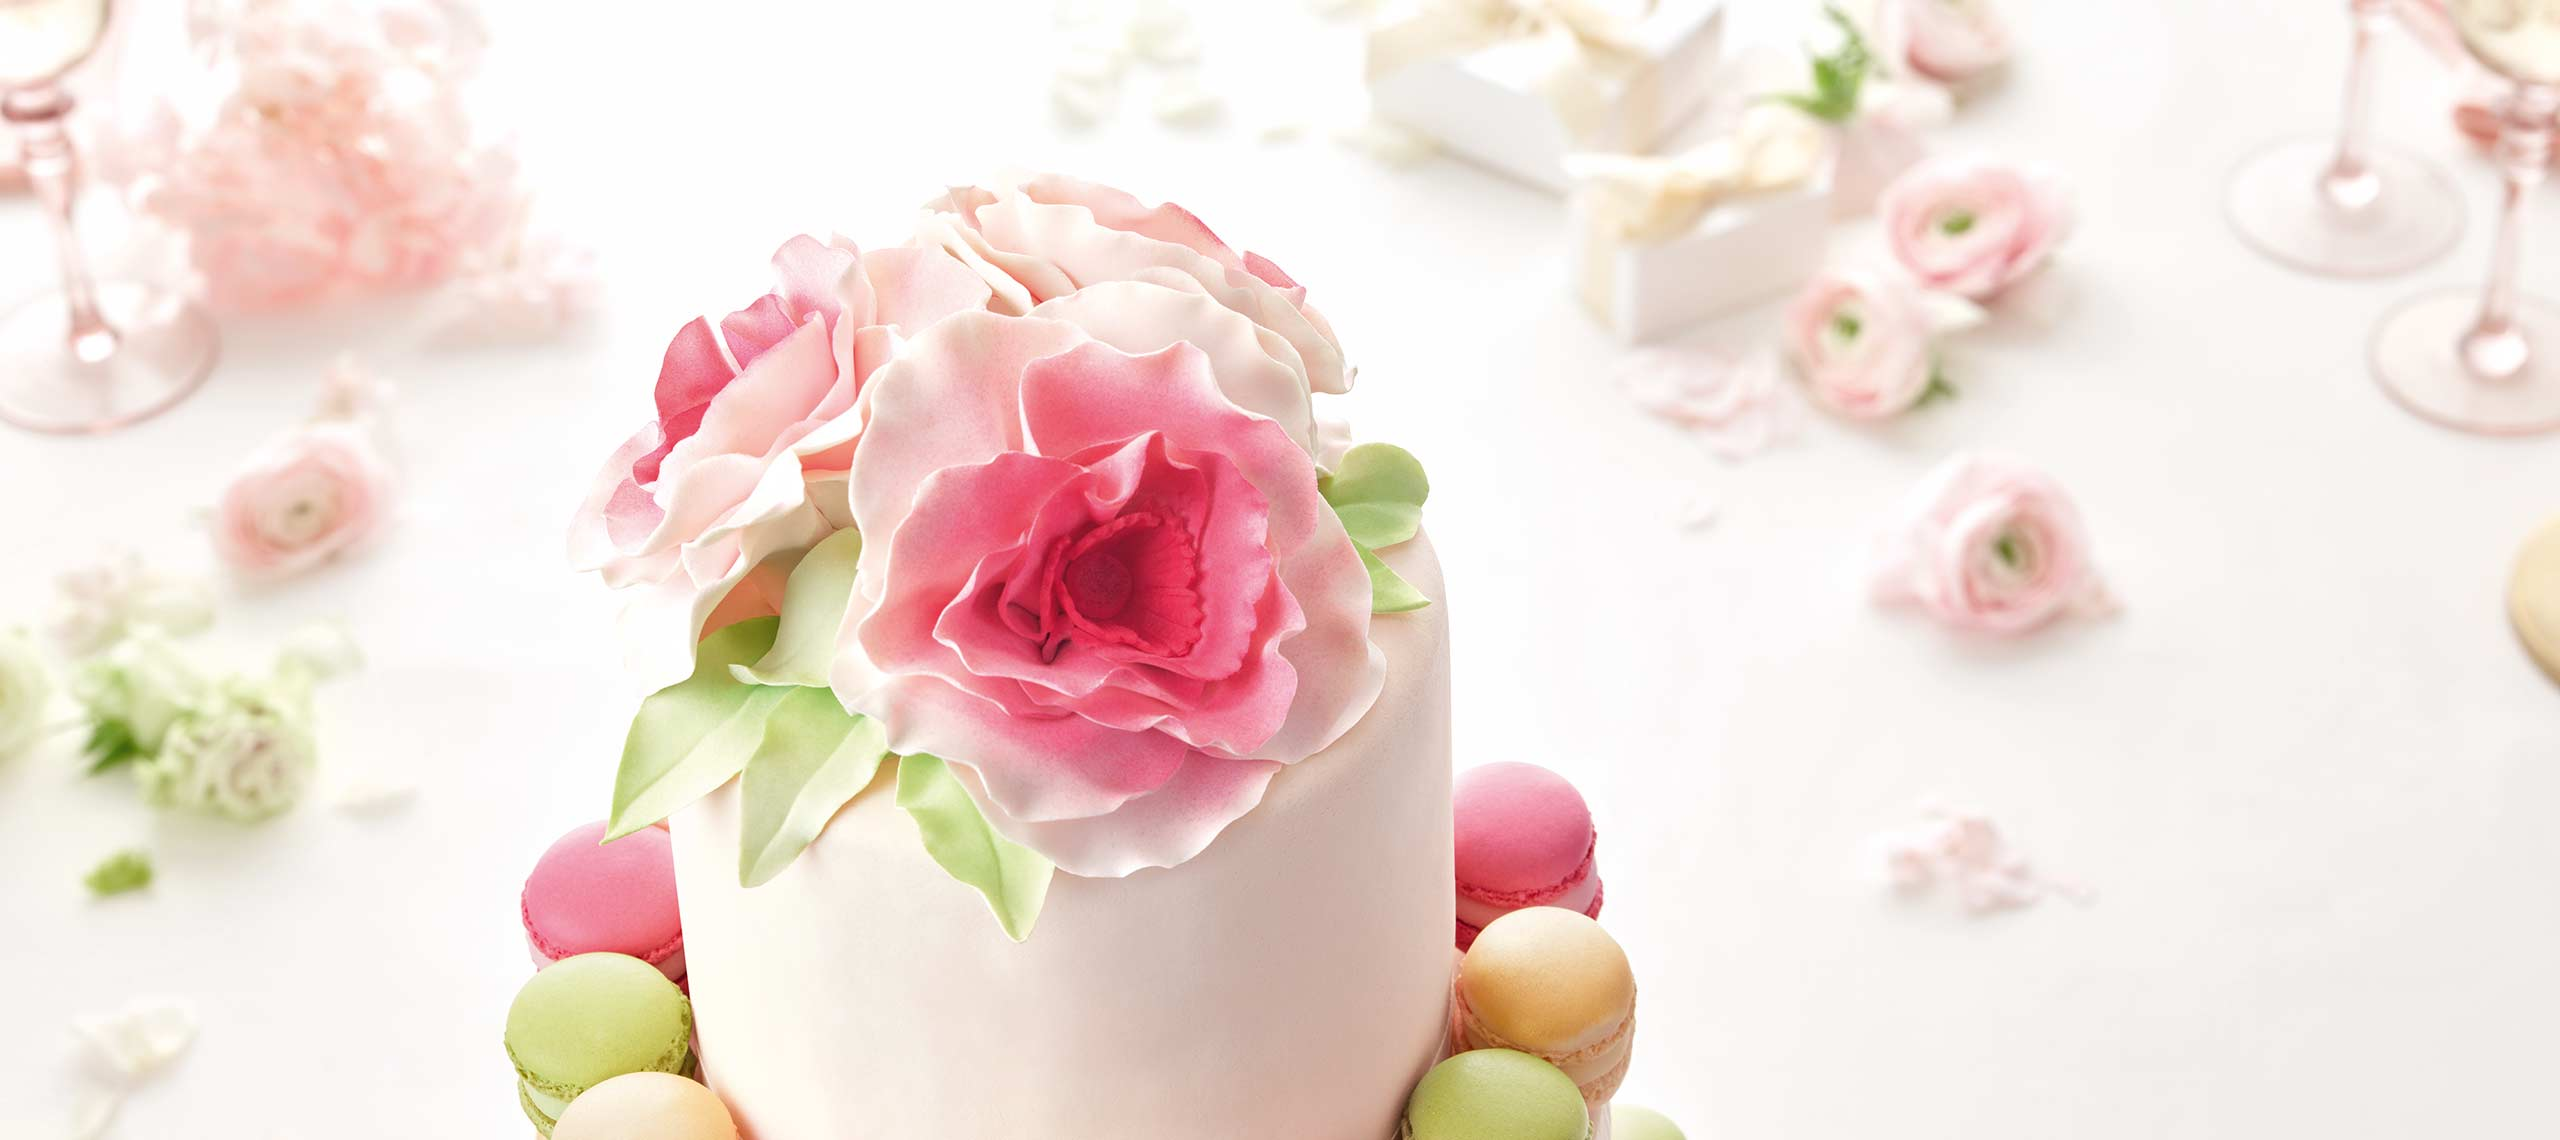 Magasin Decoration Zurich Wedding Cakes And Delicious Wedding Guest Favours